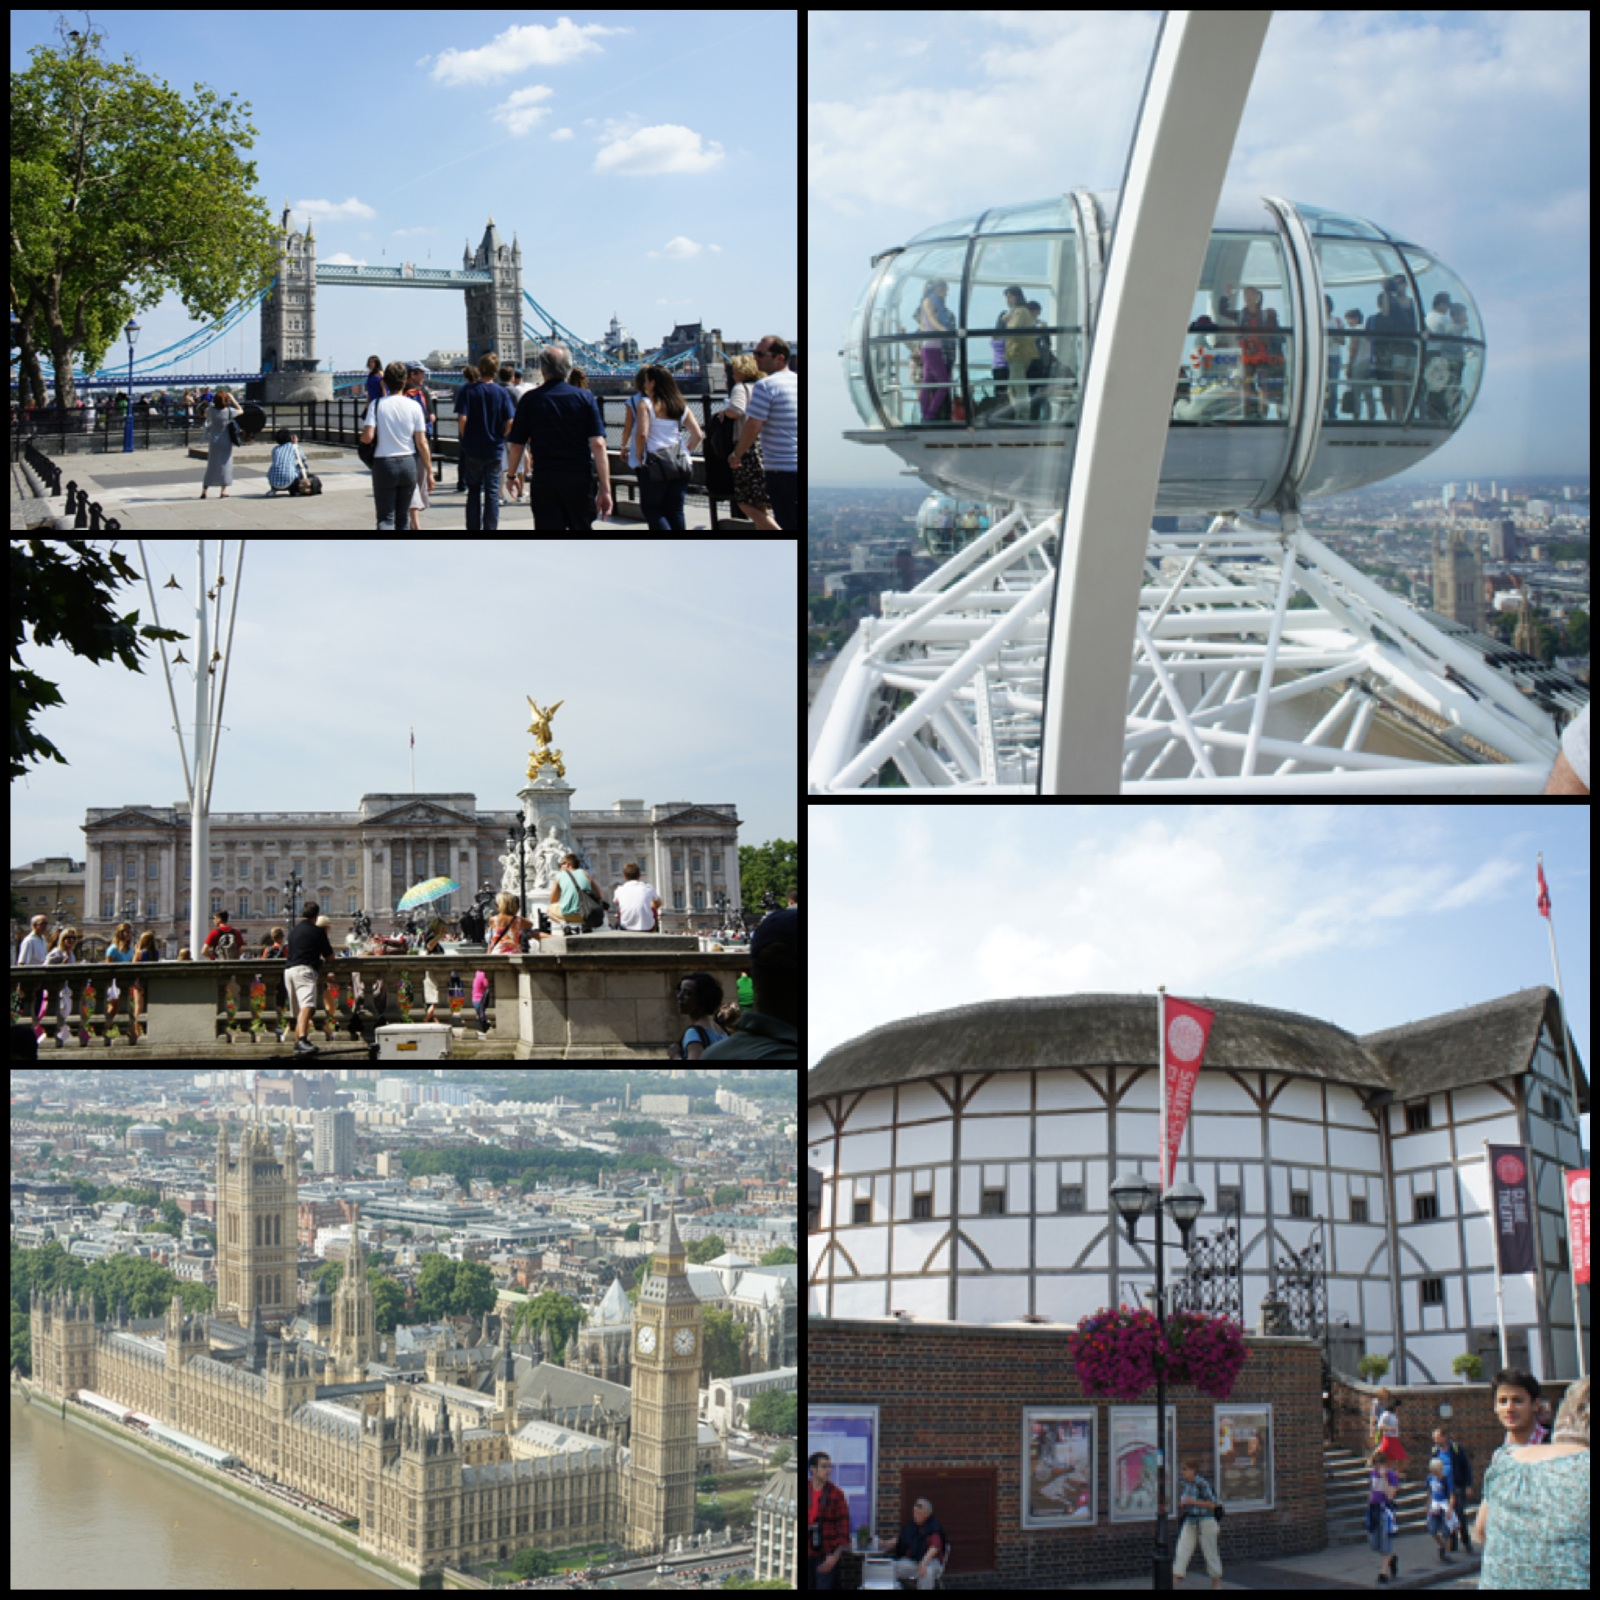 1. Across the river looking at Tower Bridge. 2. At the front gates of Buckingham Palace. 3. This is a birds eye-view of Big Ben and the Parliament buildings. 4. A pod on The London Eye. 5. The Globe Theatre on a beautiful summer's morning